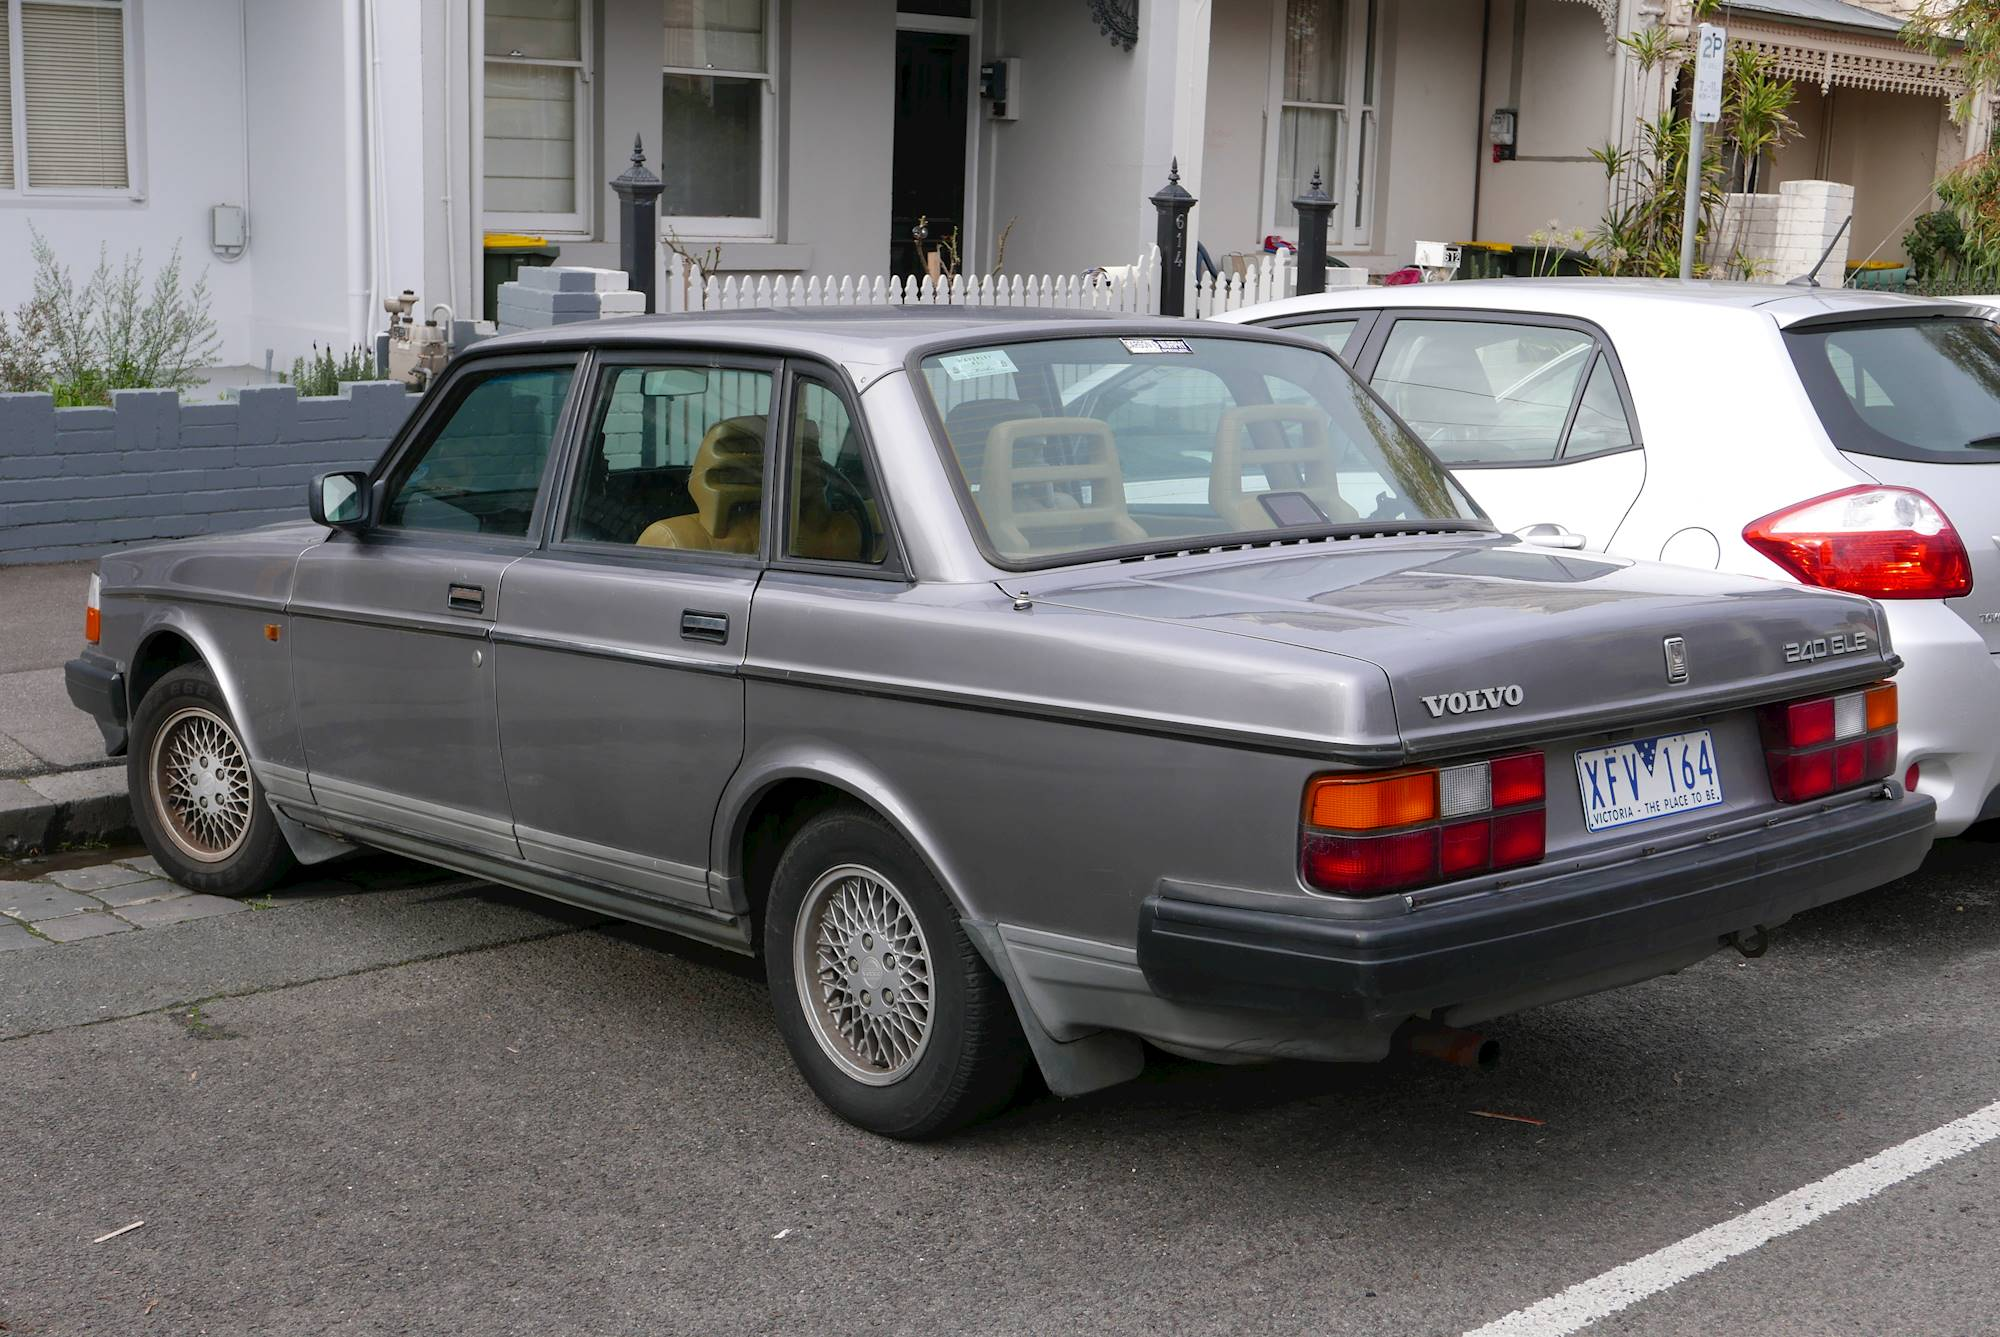 1992 Volvo 240 Gl 4dr Sedan 5 Spd Manual W Od